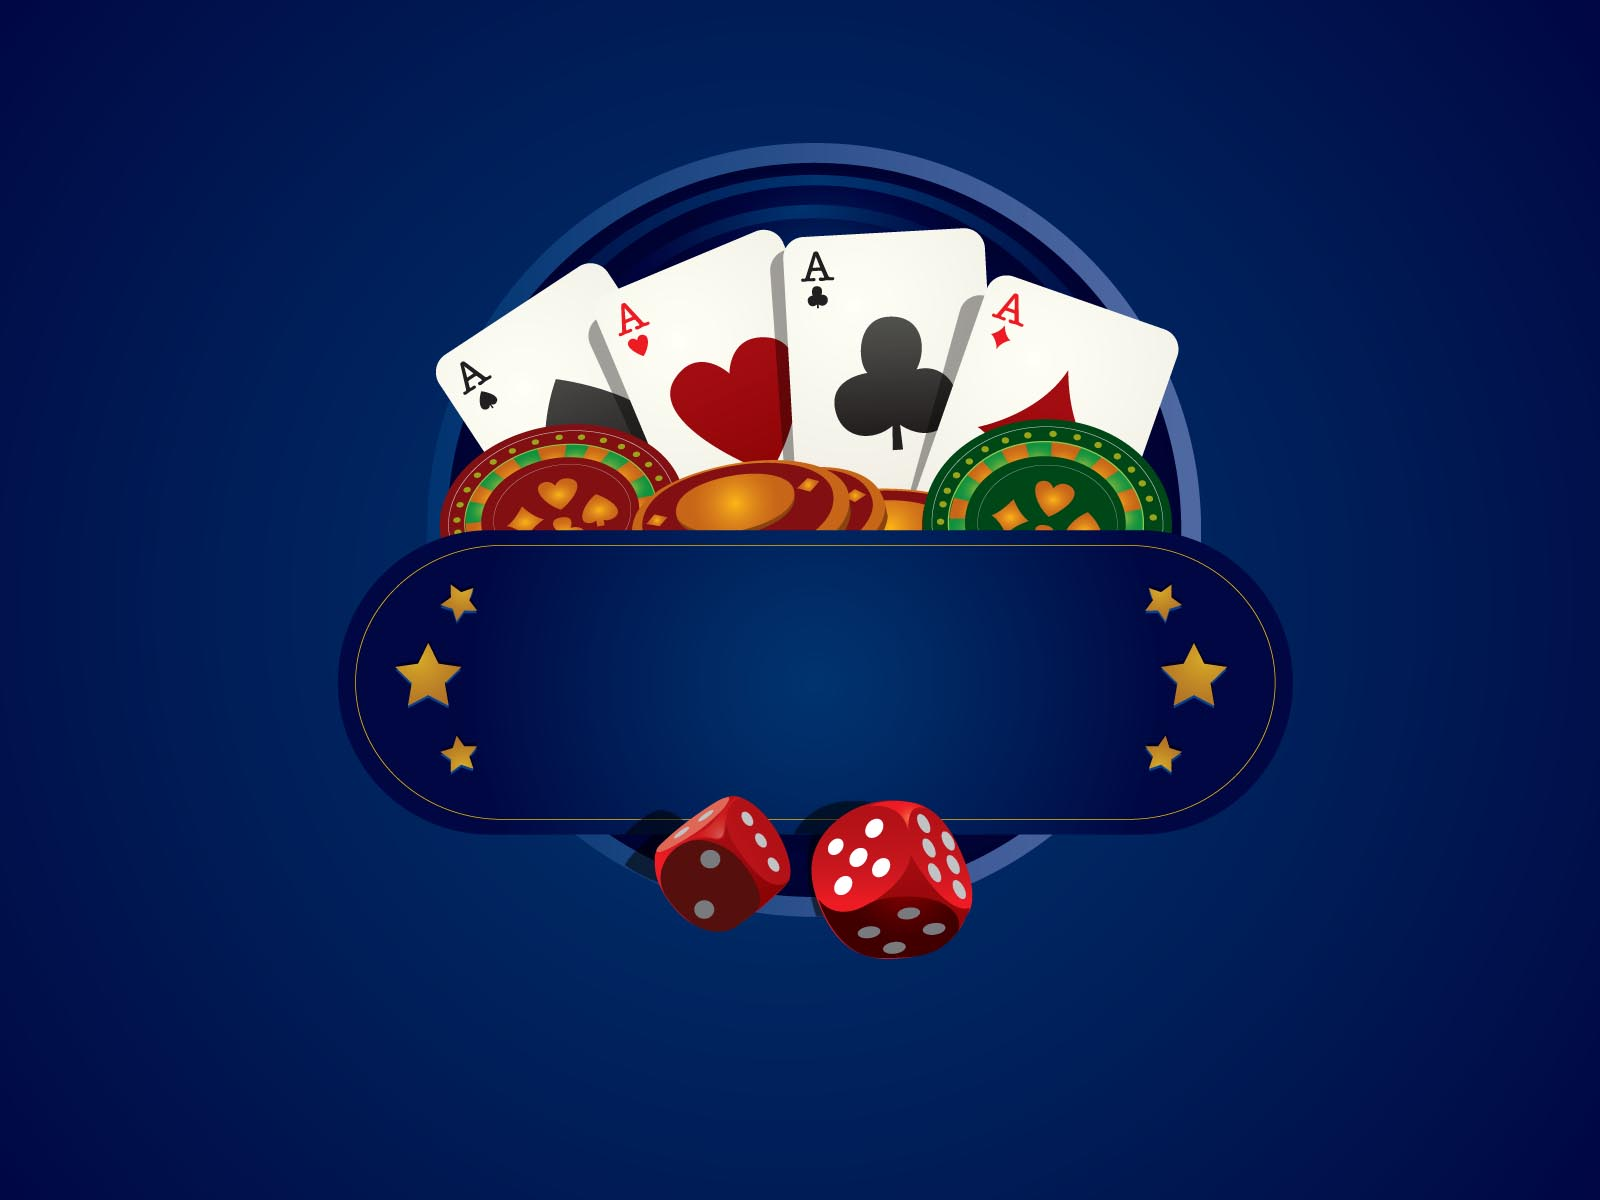 Casino background gambling methods